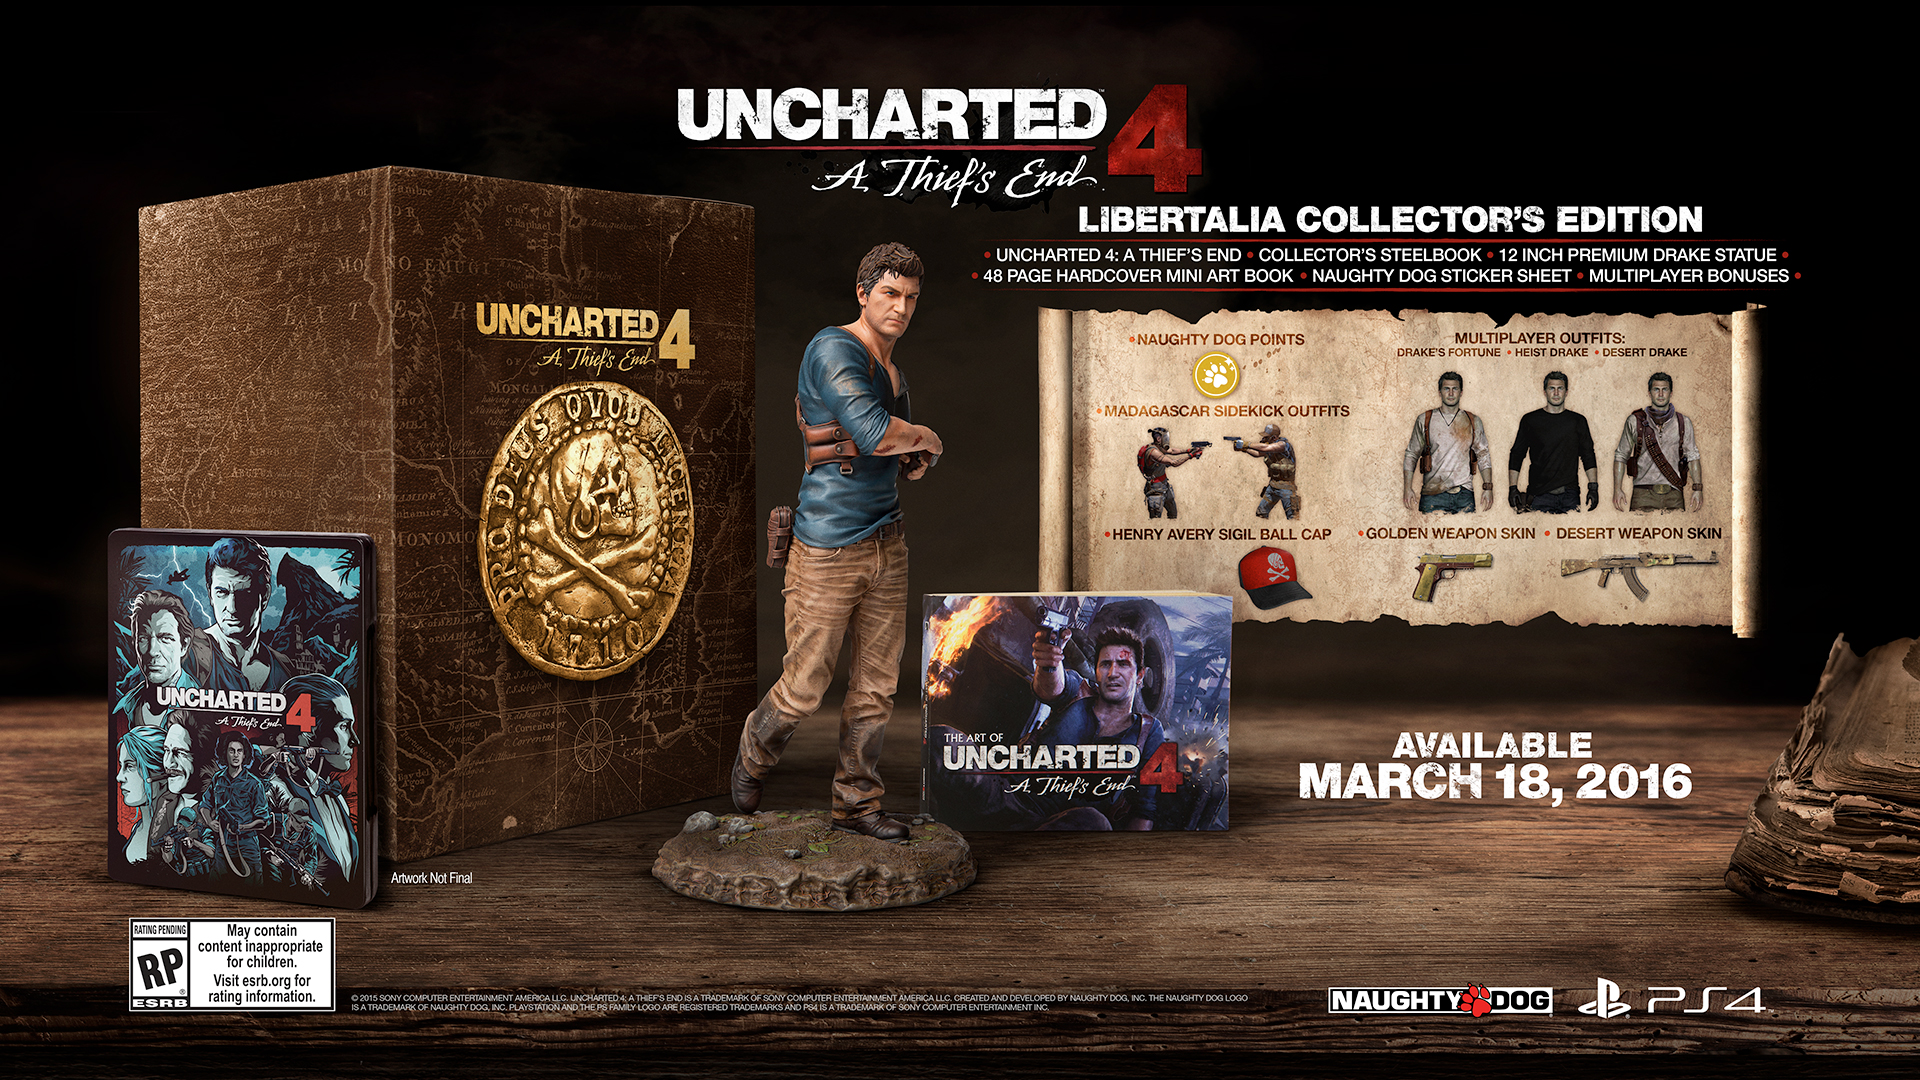 Uncharted 4: A Thief's End has an Official Release Date - The Game